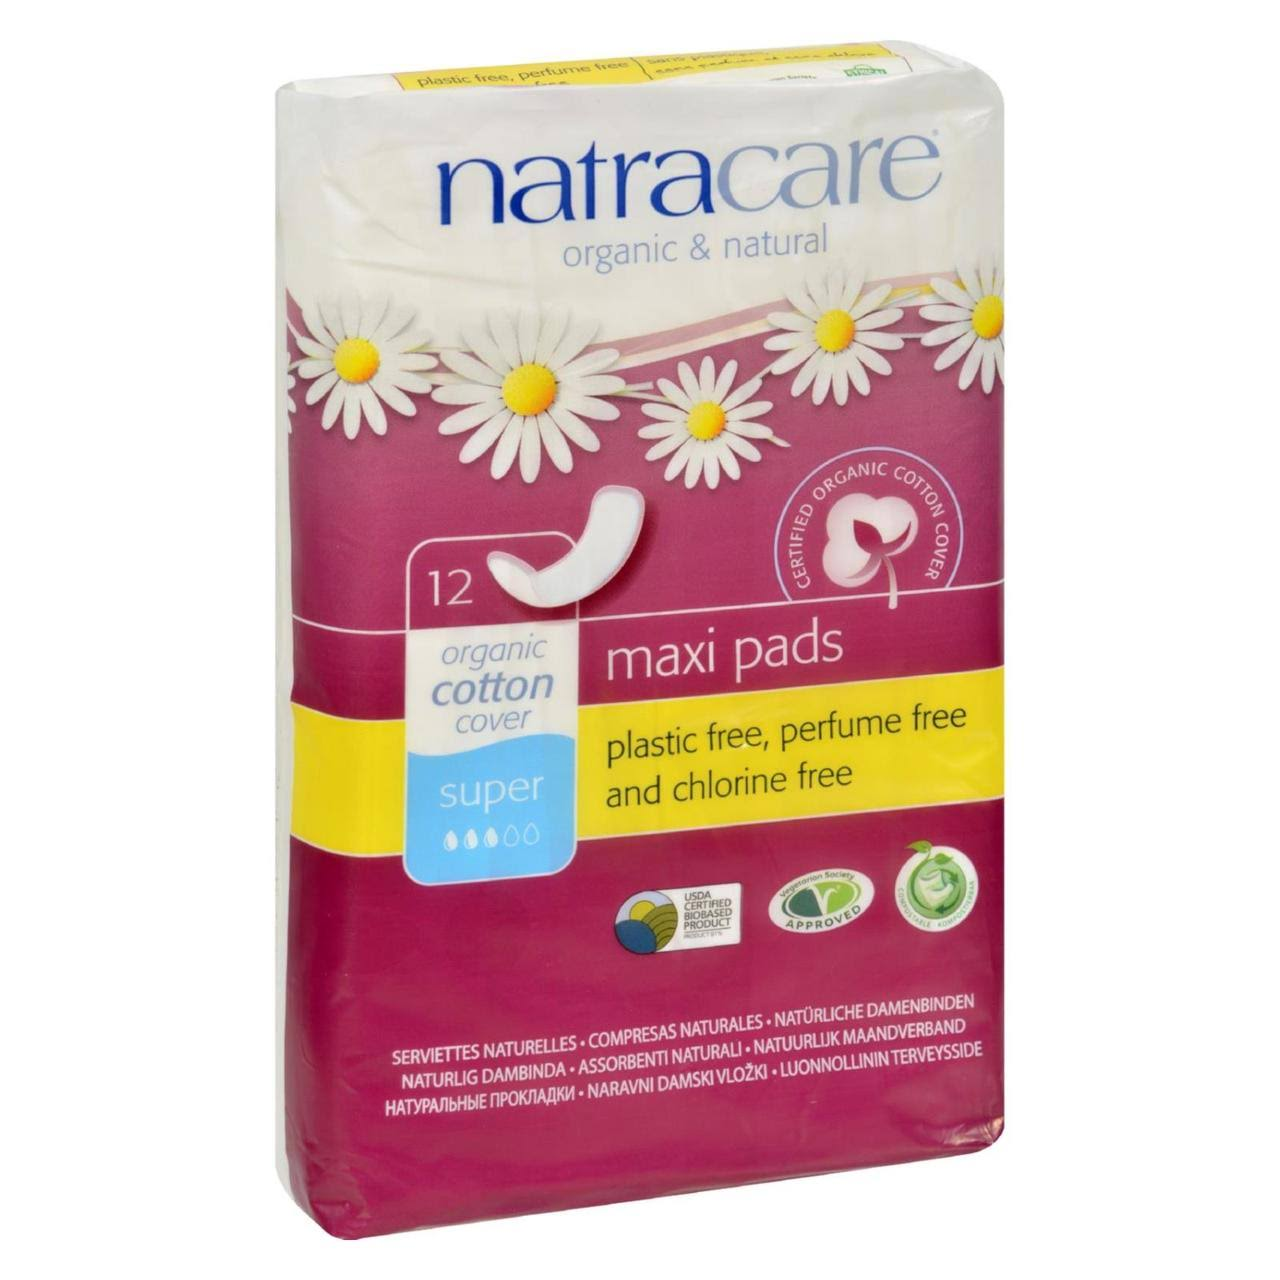 Natracare Organic Cotton Cover Super Maxi Pads - 12ct